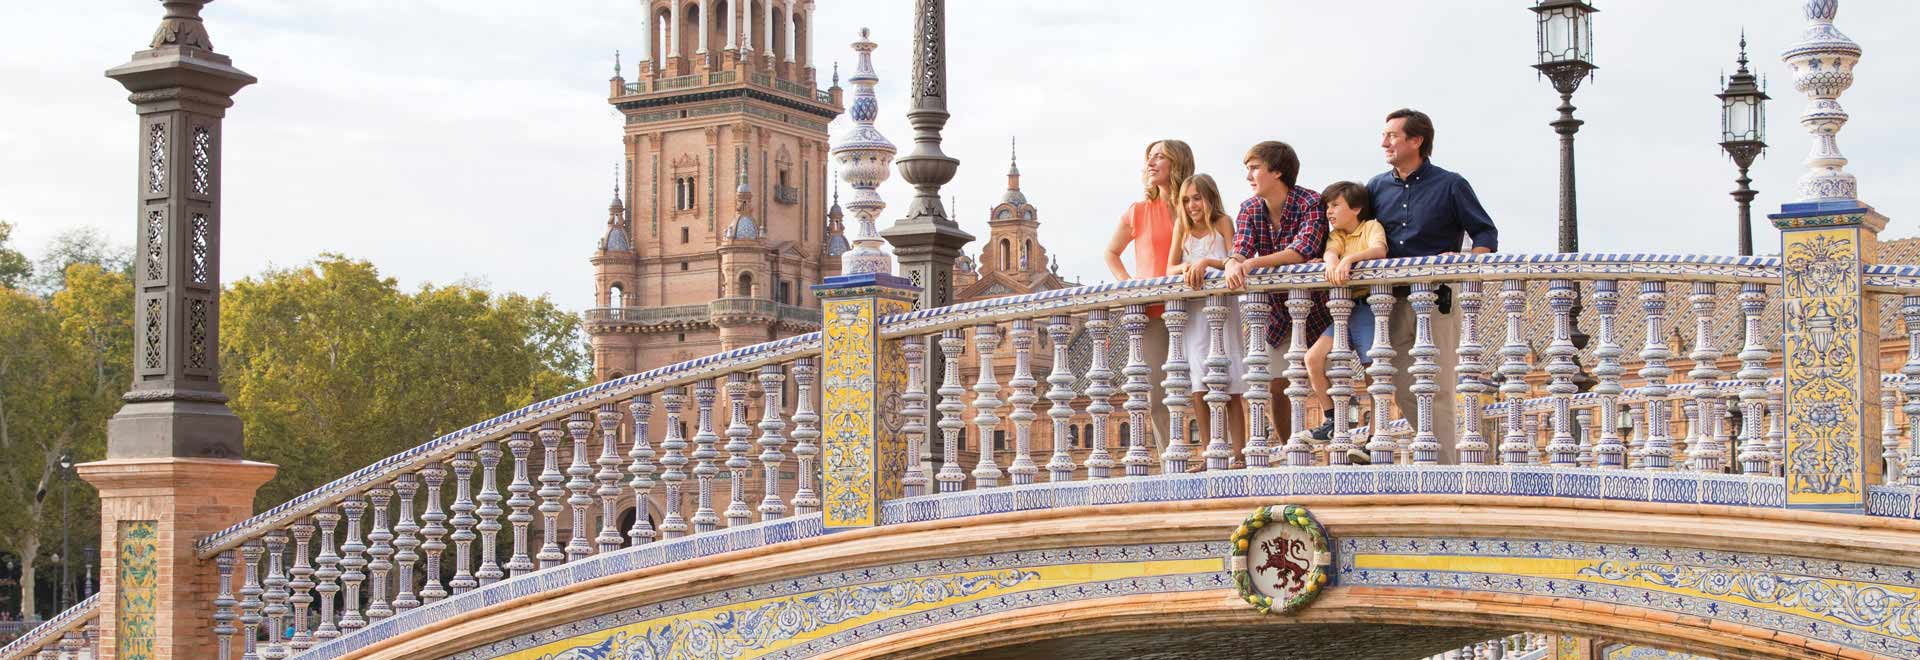 Europe Spain Seville Bridge Family